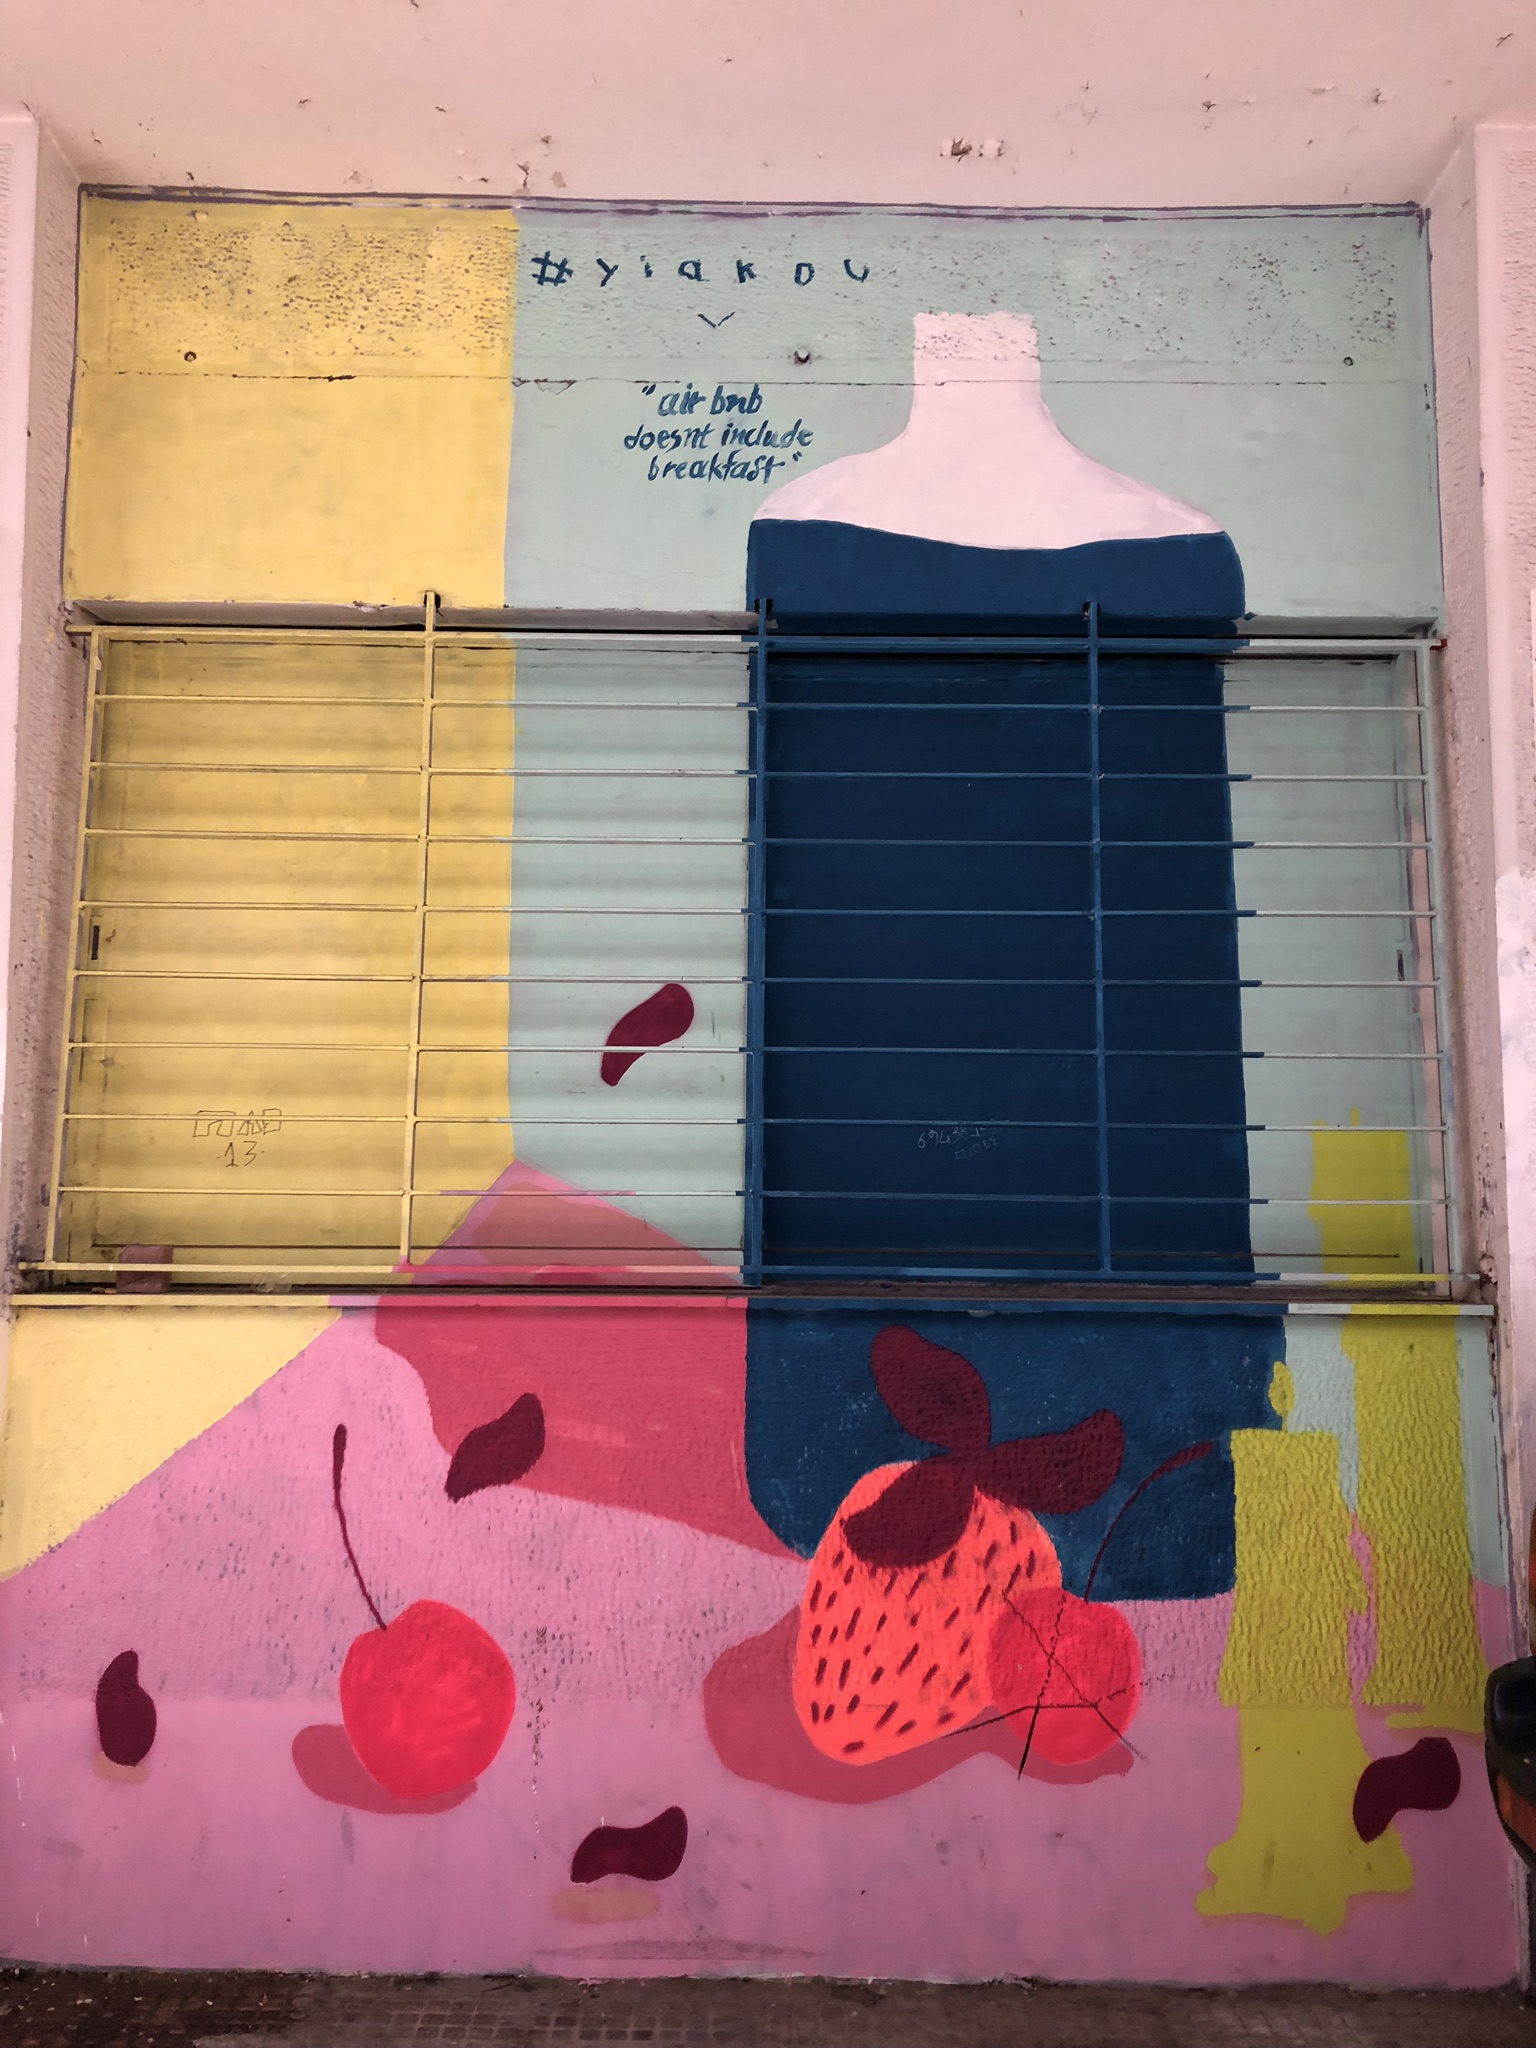 """AirBNB doesn't include breakfast"" street art"